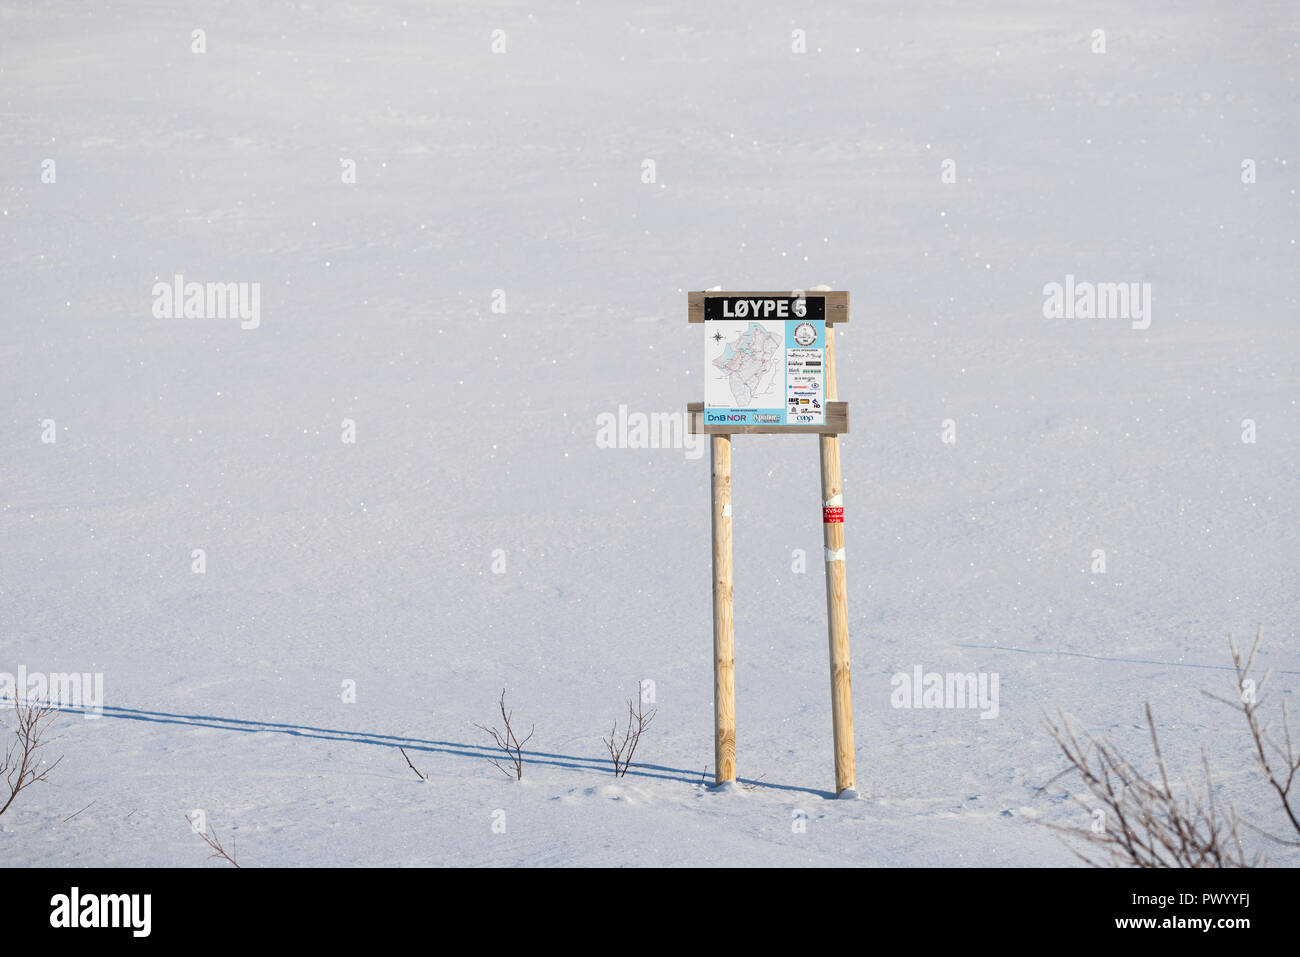 Snowmobile track sign, - Stock Image